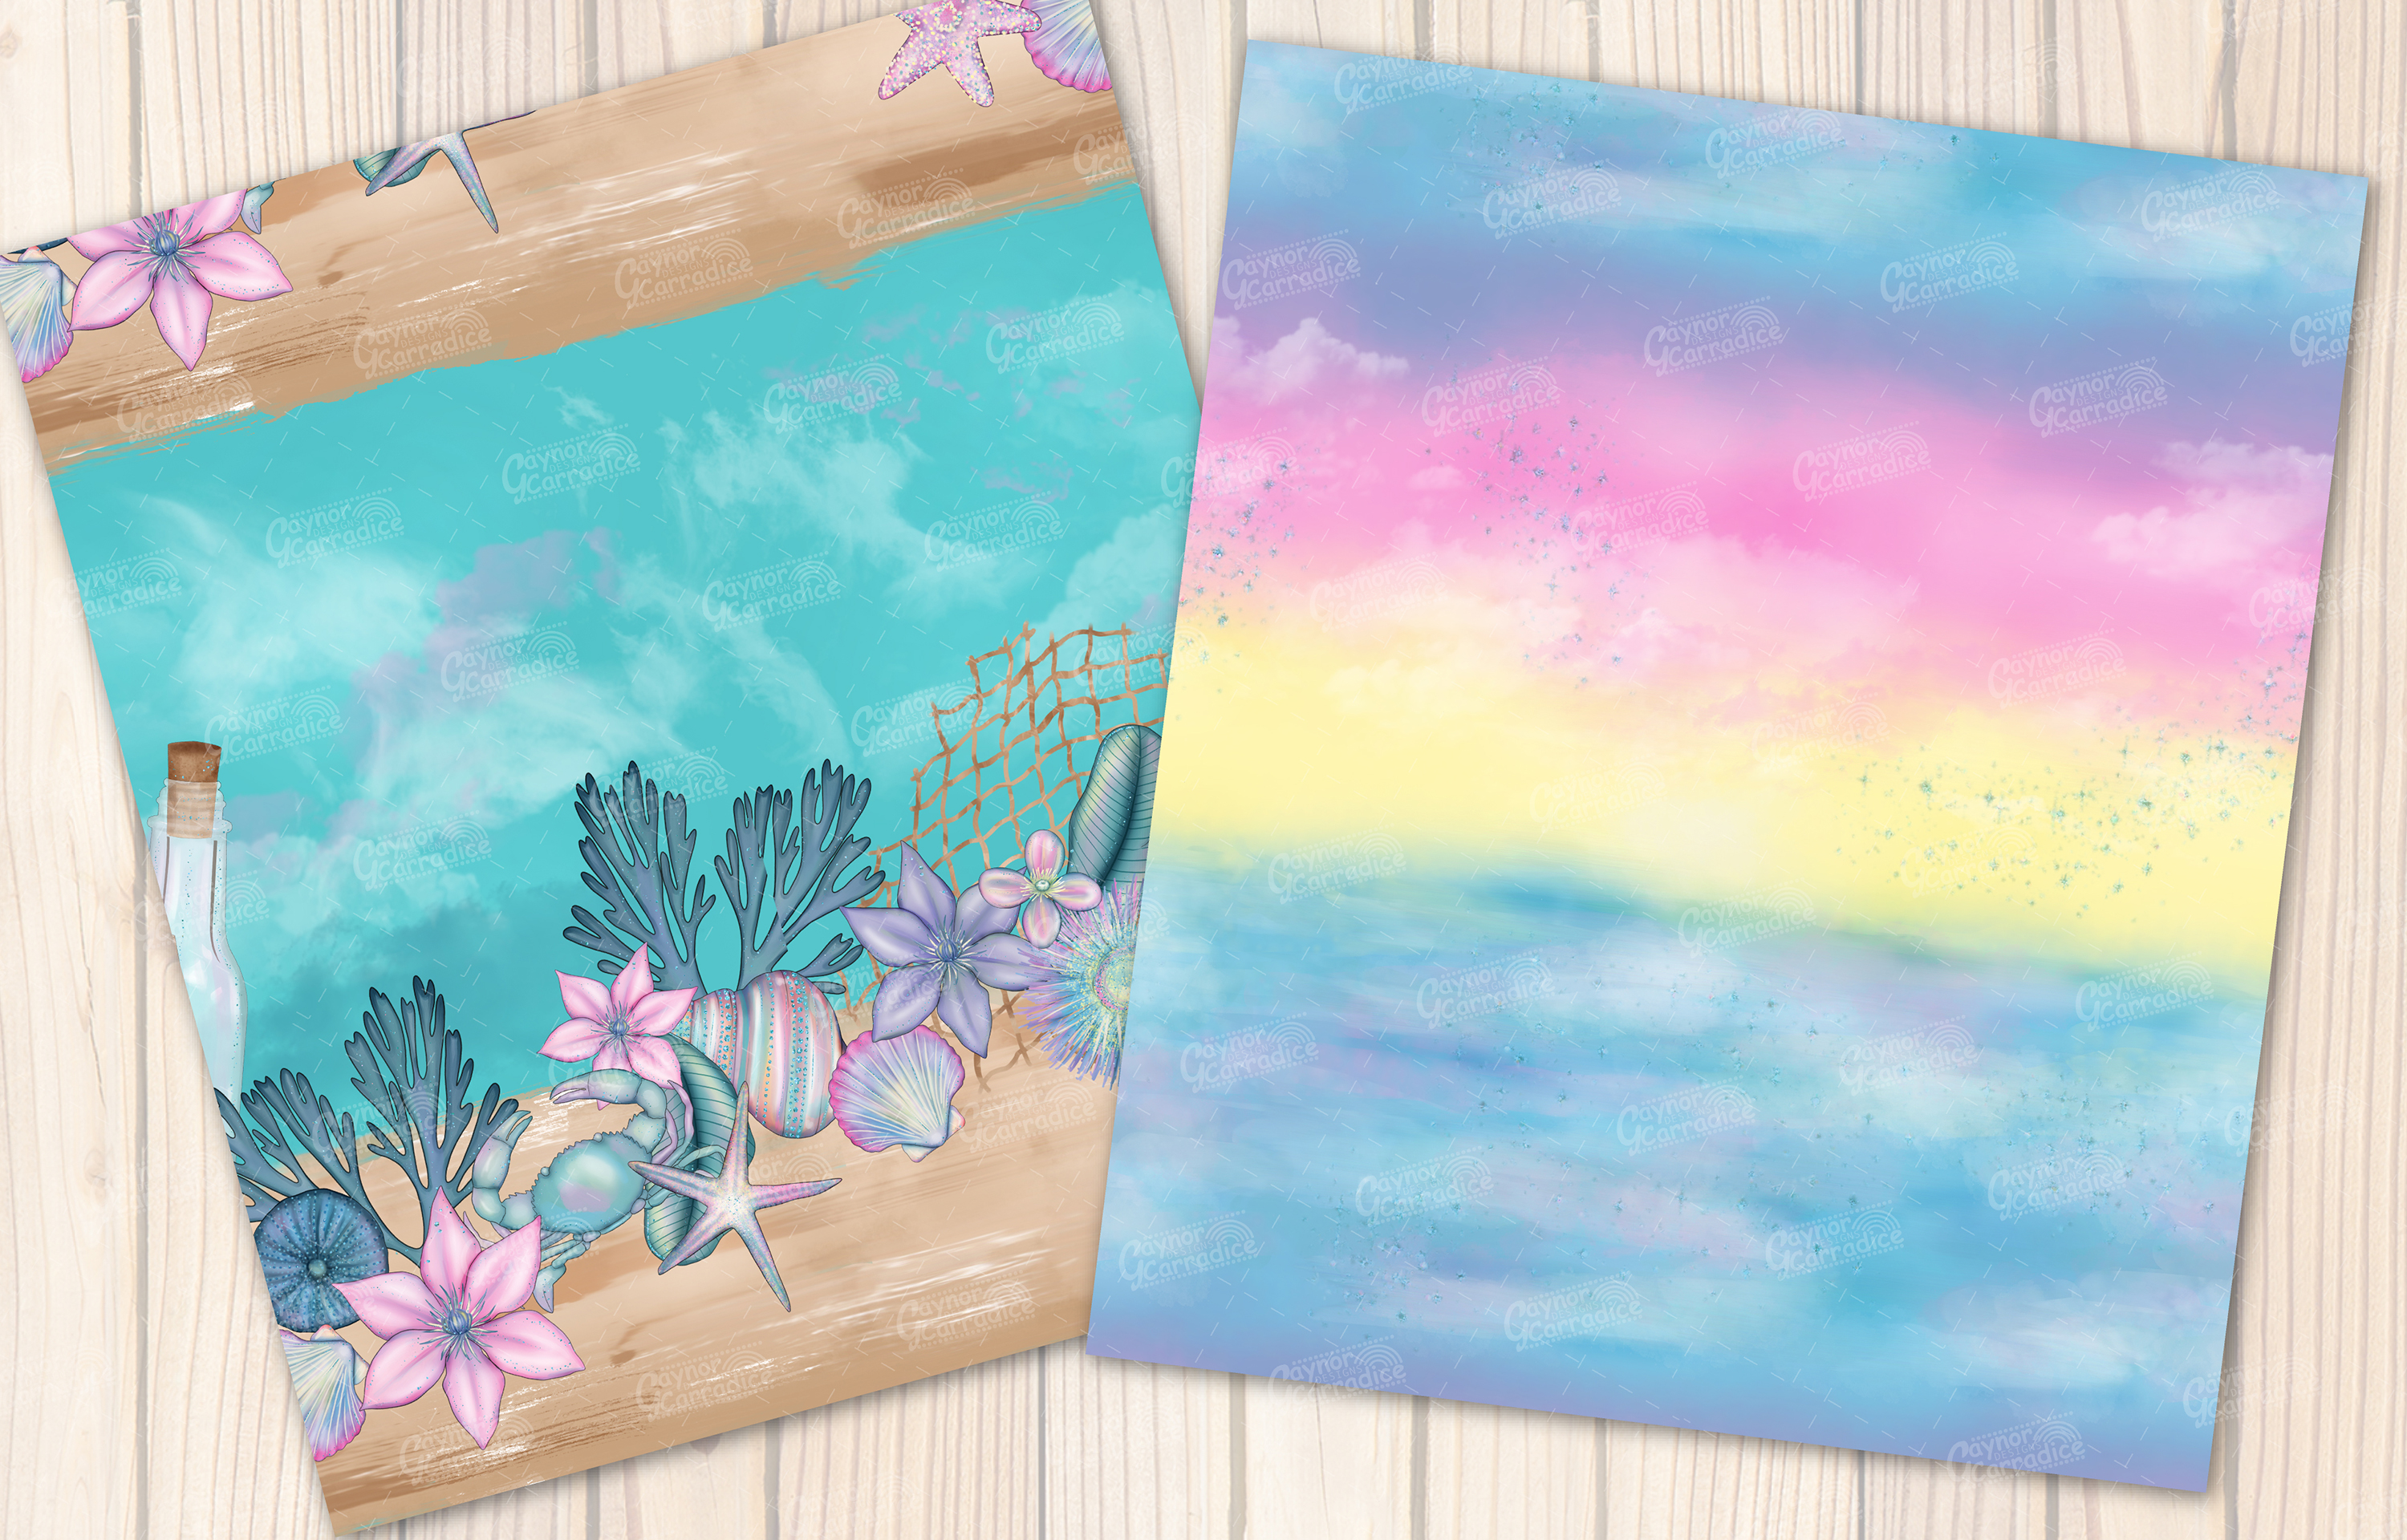 I washed up like this - Summer mermaid Seamless Patterns example image 5